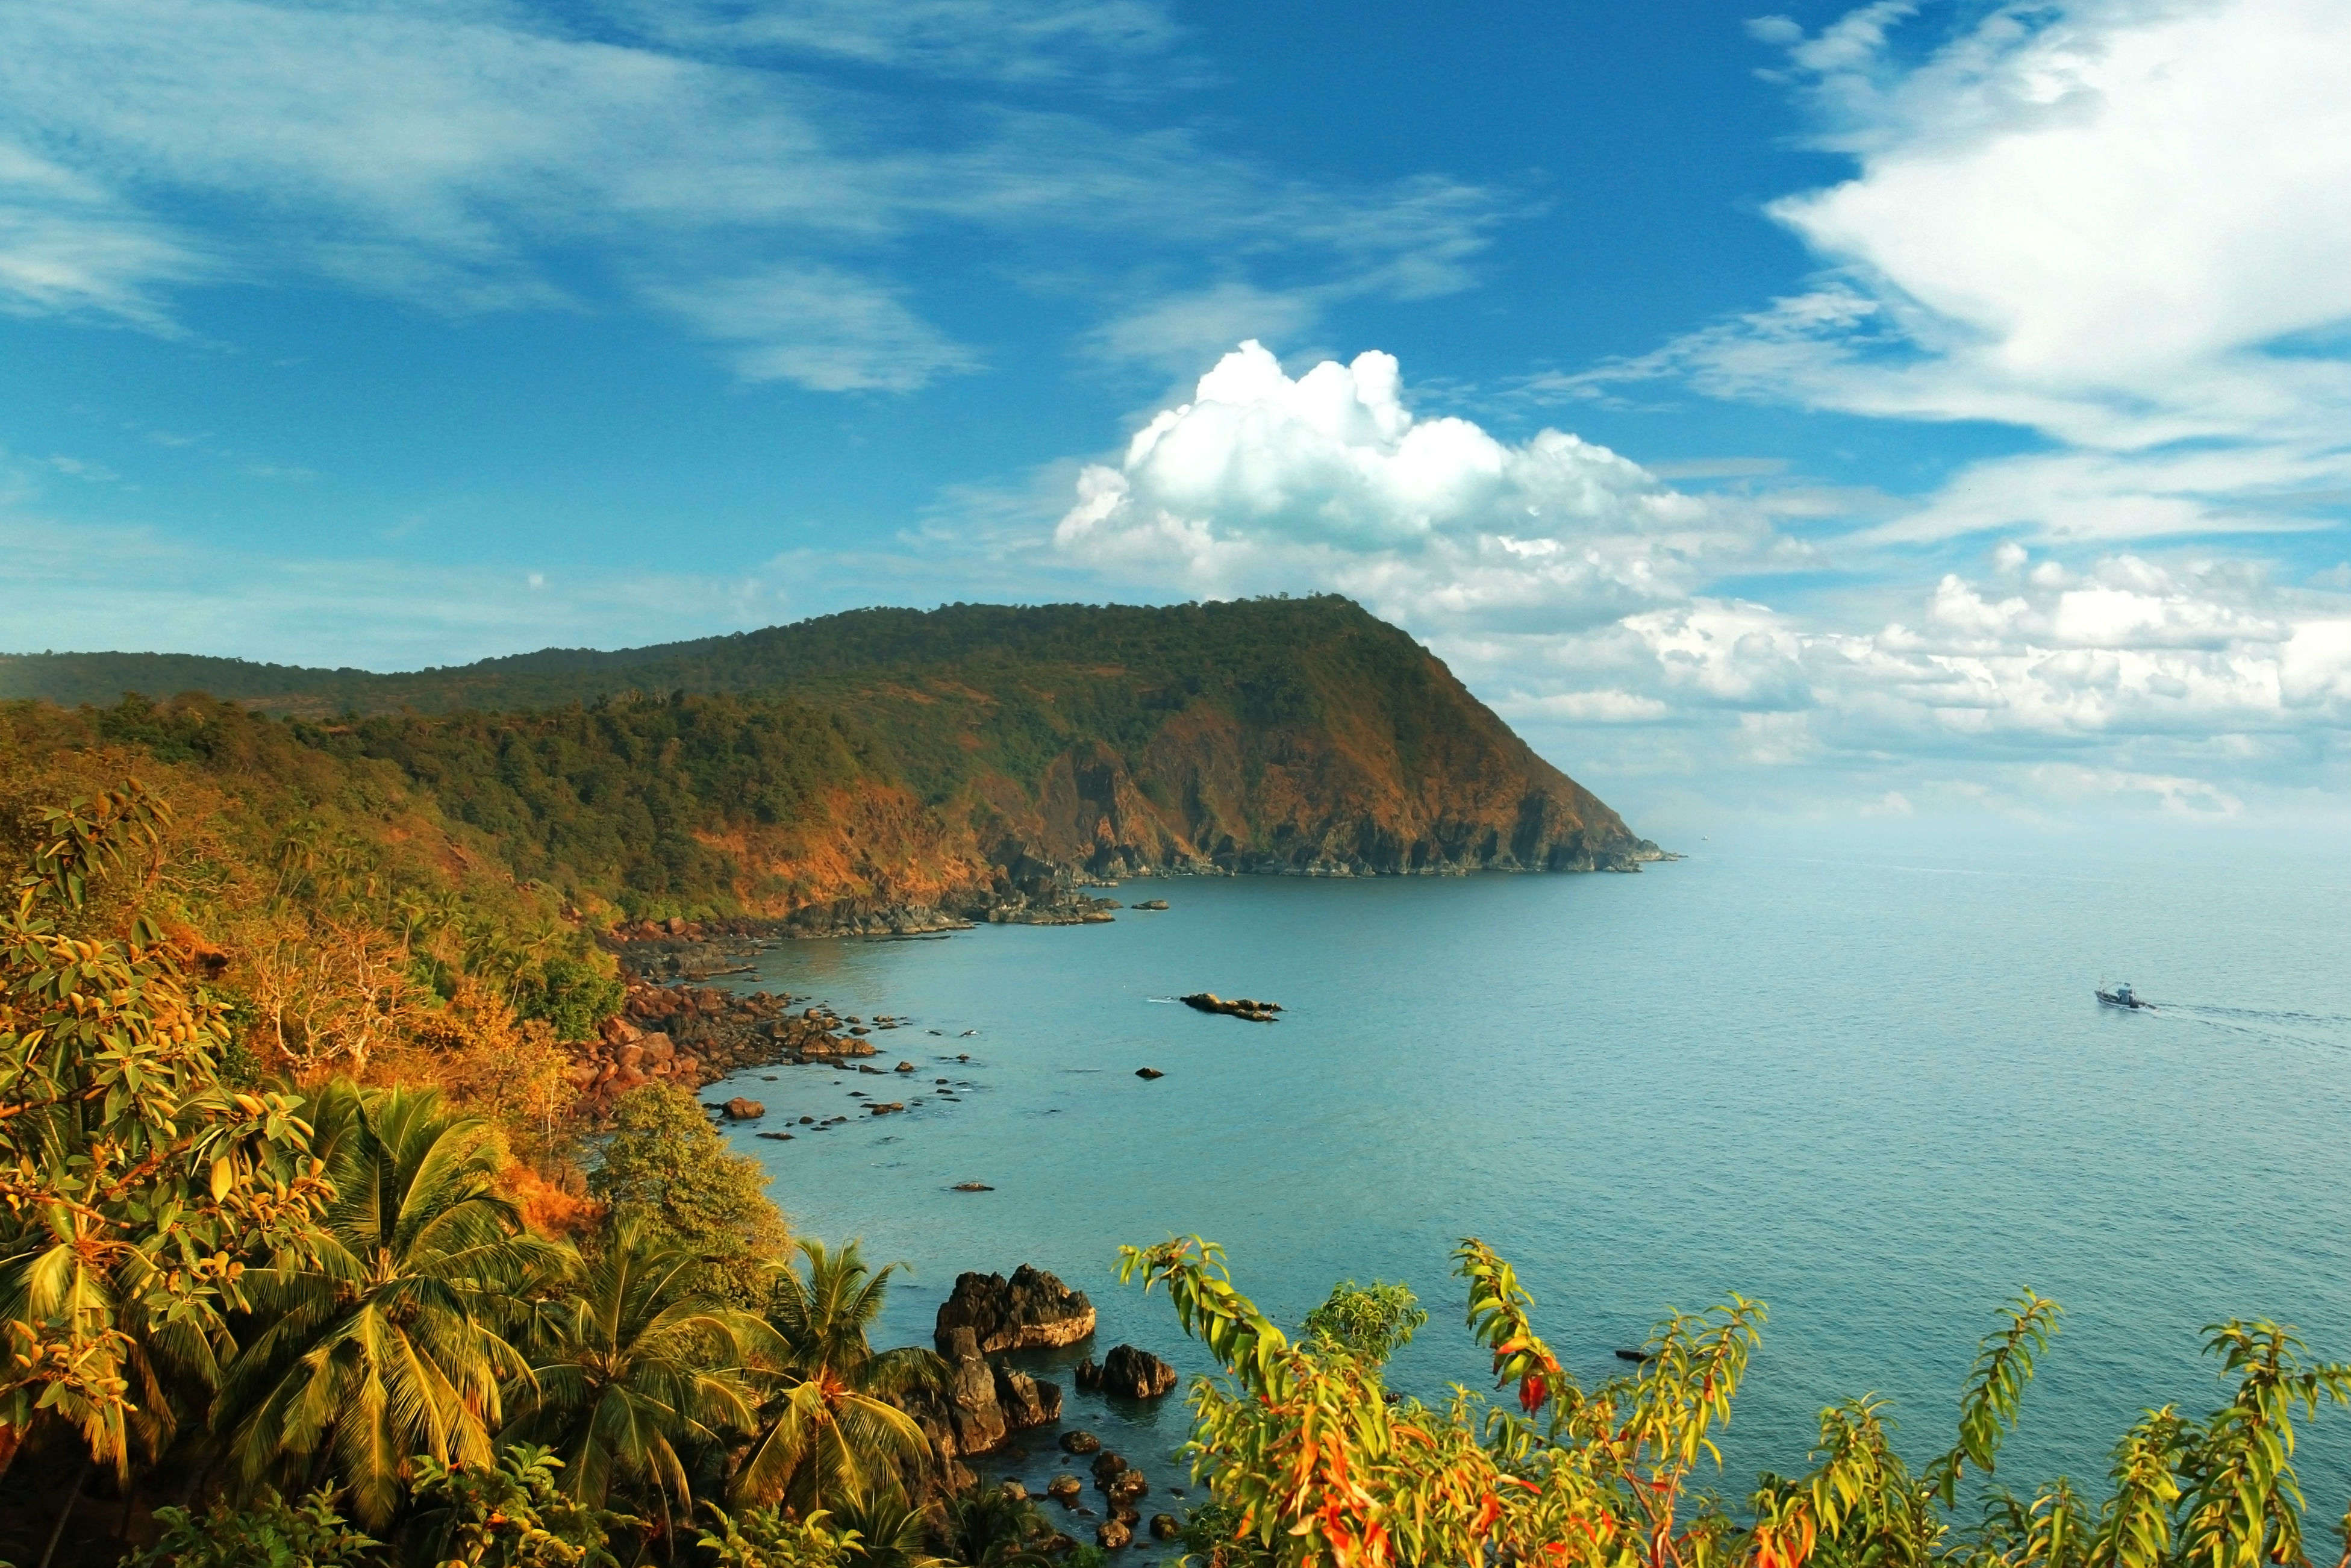 IRCTC offers Goa sightseeing tour at just INR 400 per person